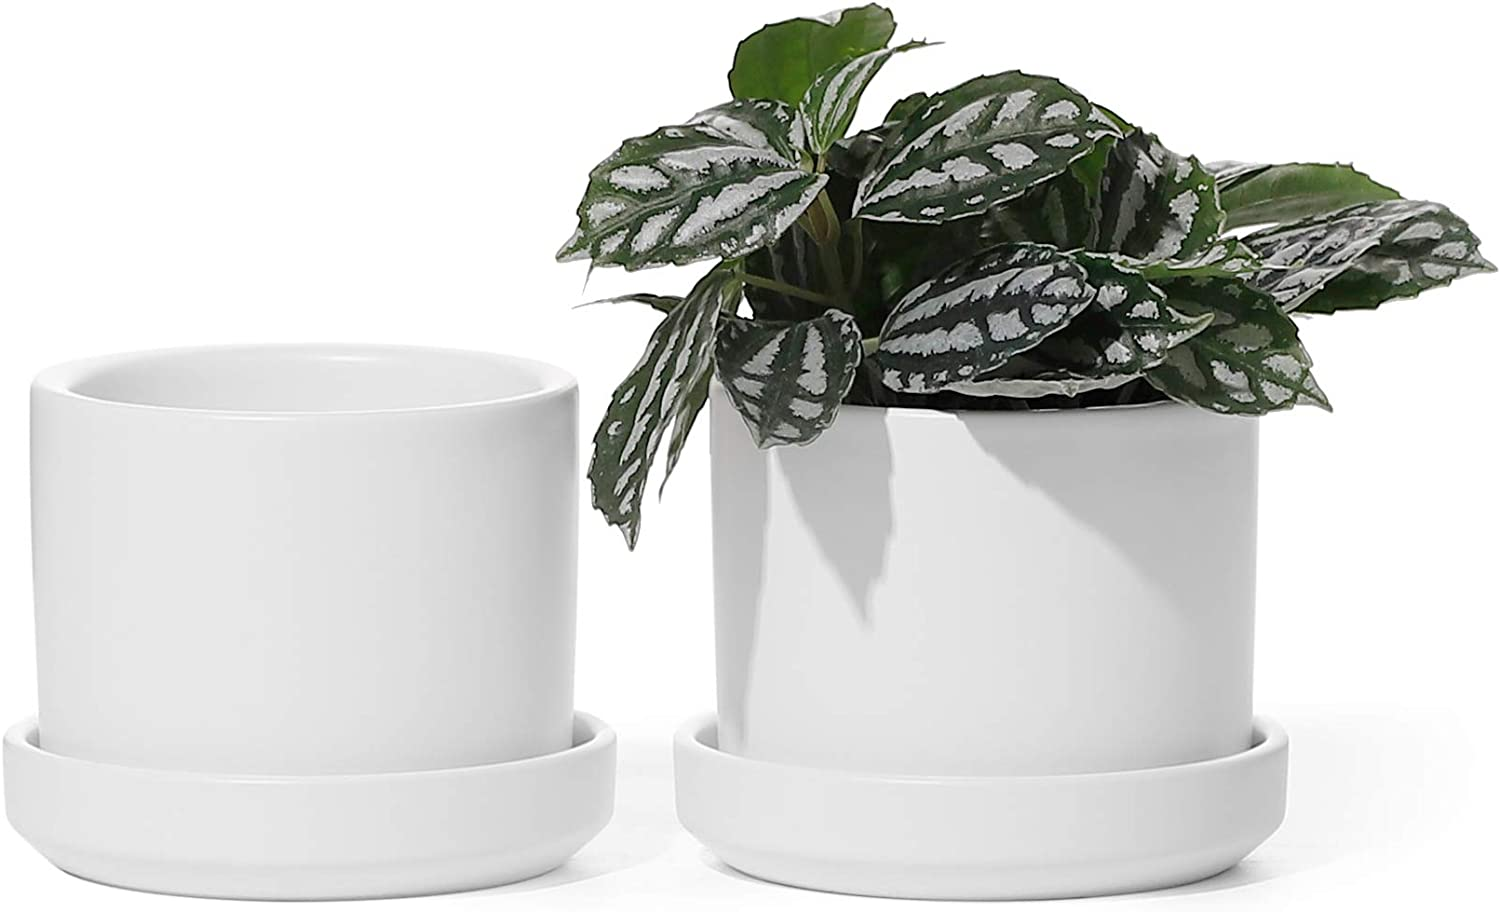 Succulent Planters - POTEY 800 3.5 Inch Small Cylinder Ceramic Plant Pots with Watering Drain Holes and Trays for Flowers, Succulents, Orchid, Snake Plant, Modern Home Decor - White, Set of 2